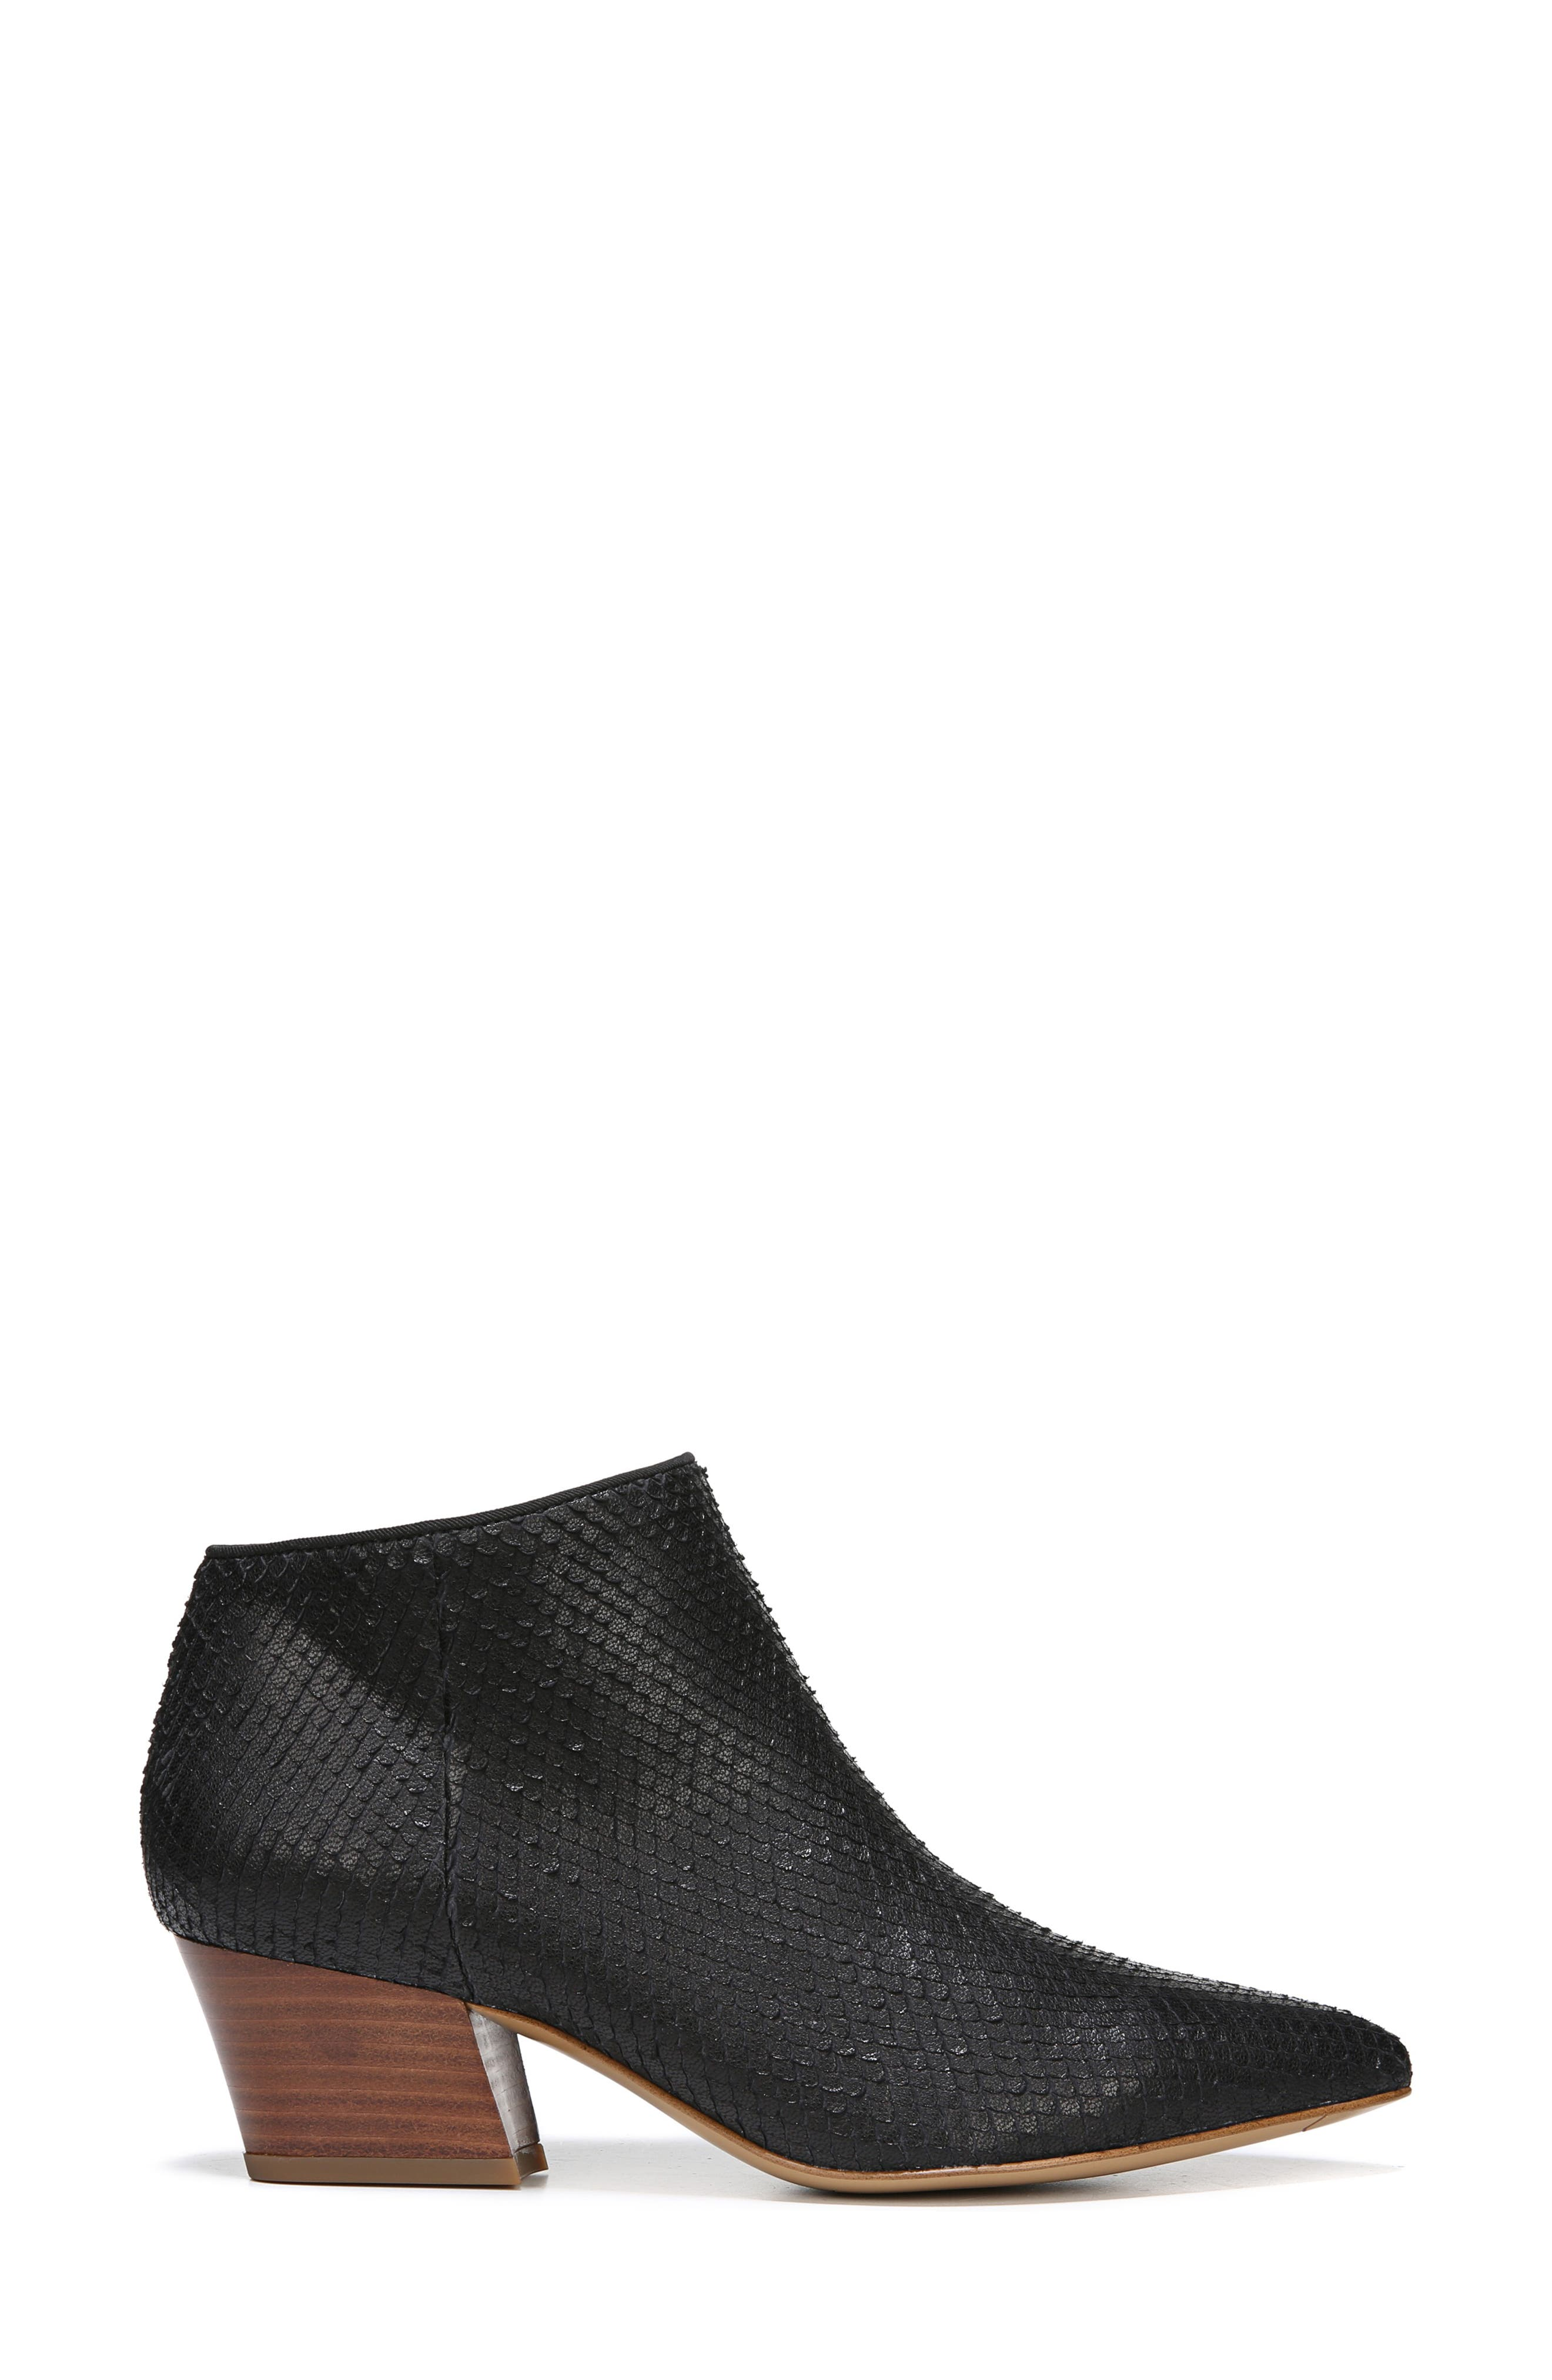 Lowe Bootie,                             Alternate thumbnail 3, color,                             BLACK SNAKE PRINT LEATHER